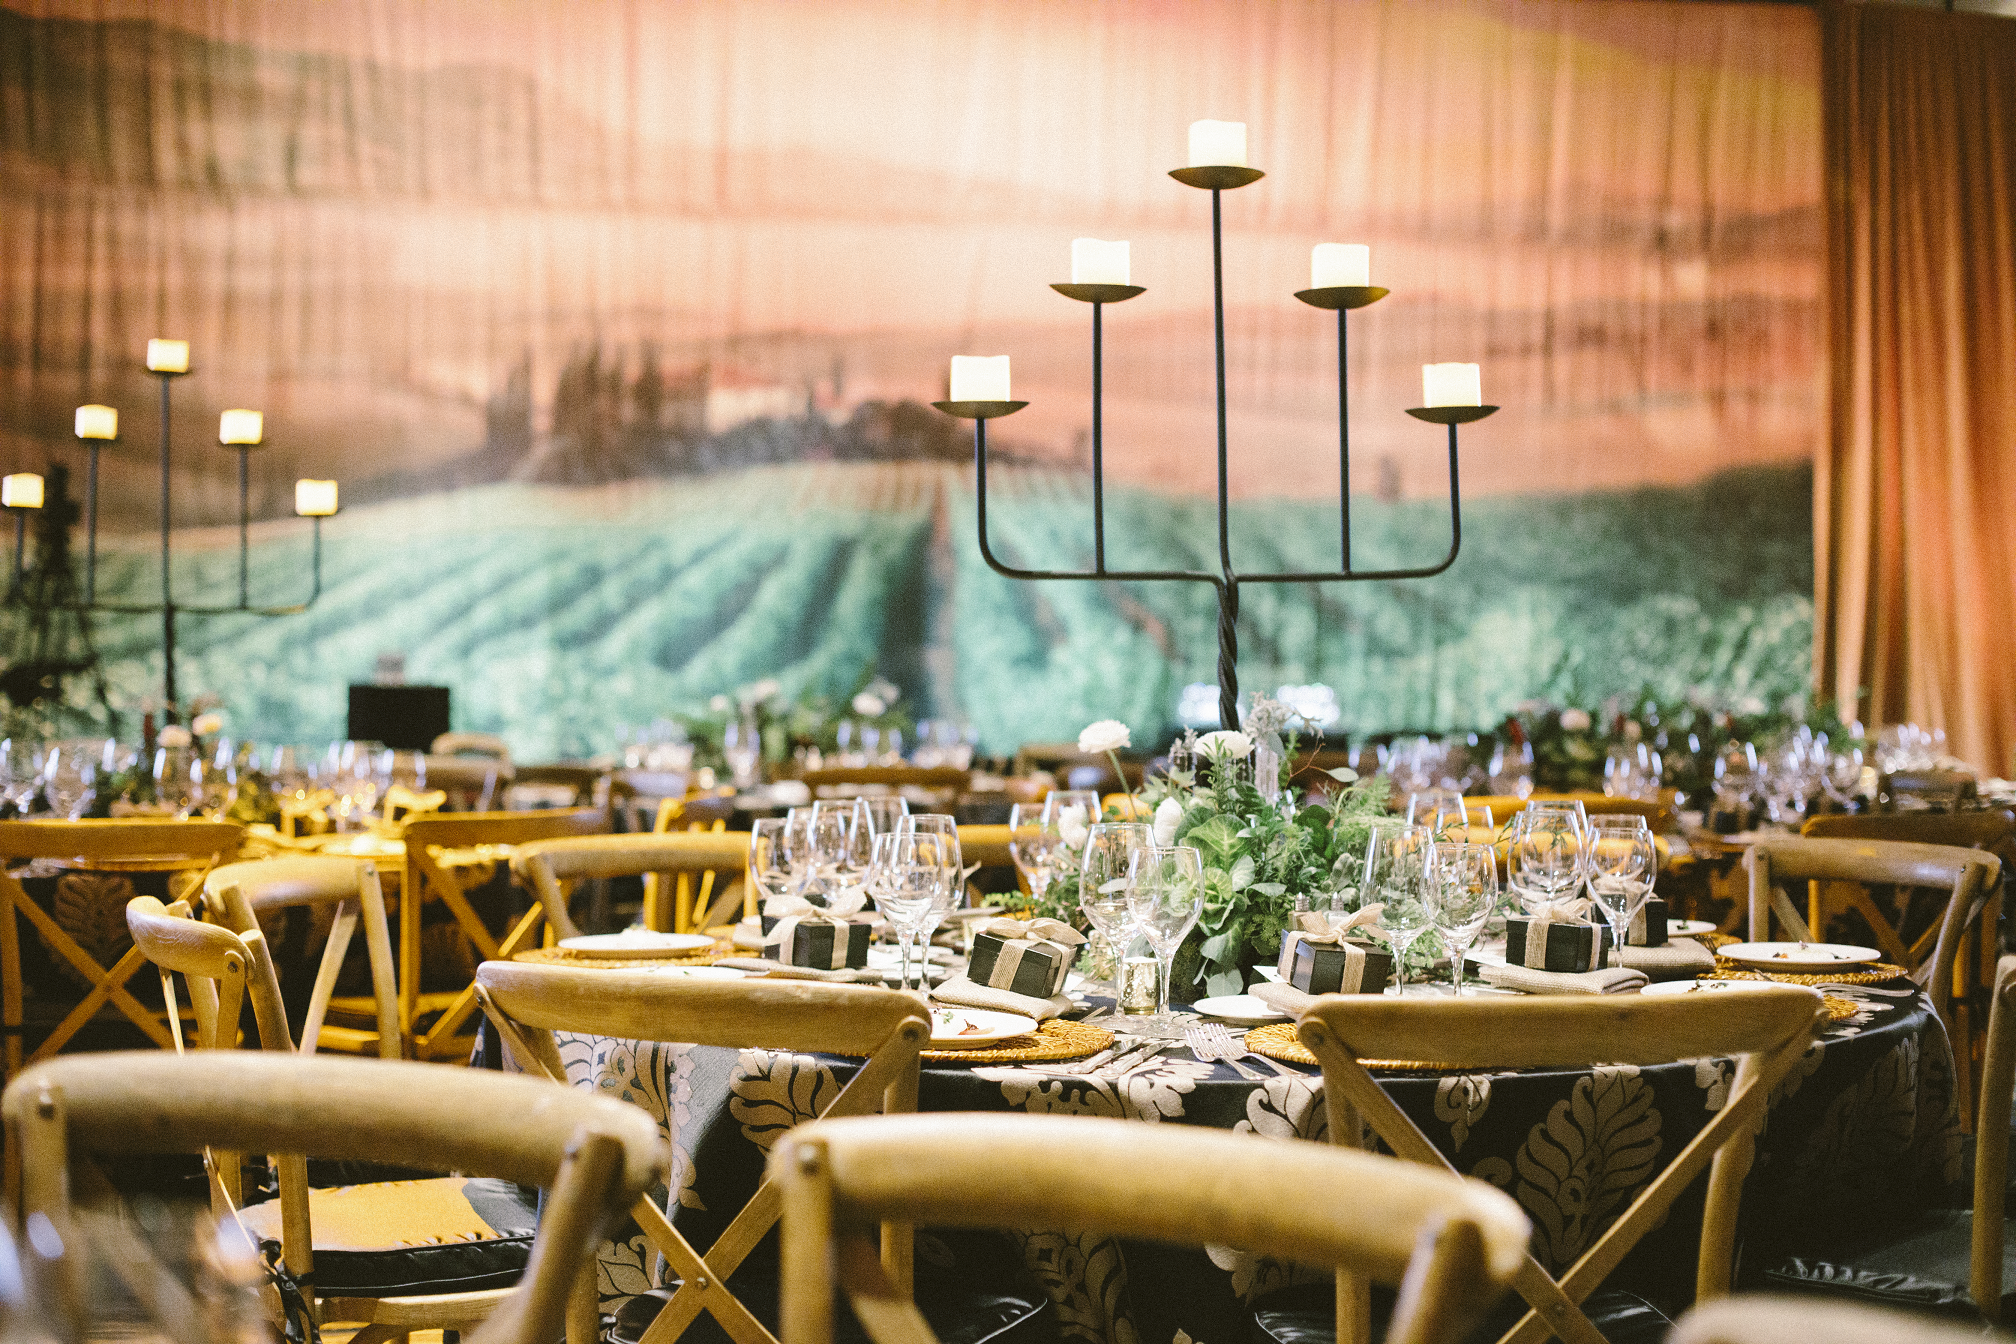 An awards event inspired by the wine country featuring natural wood chairs, centerpieces featuring greenery and wine bottles